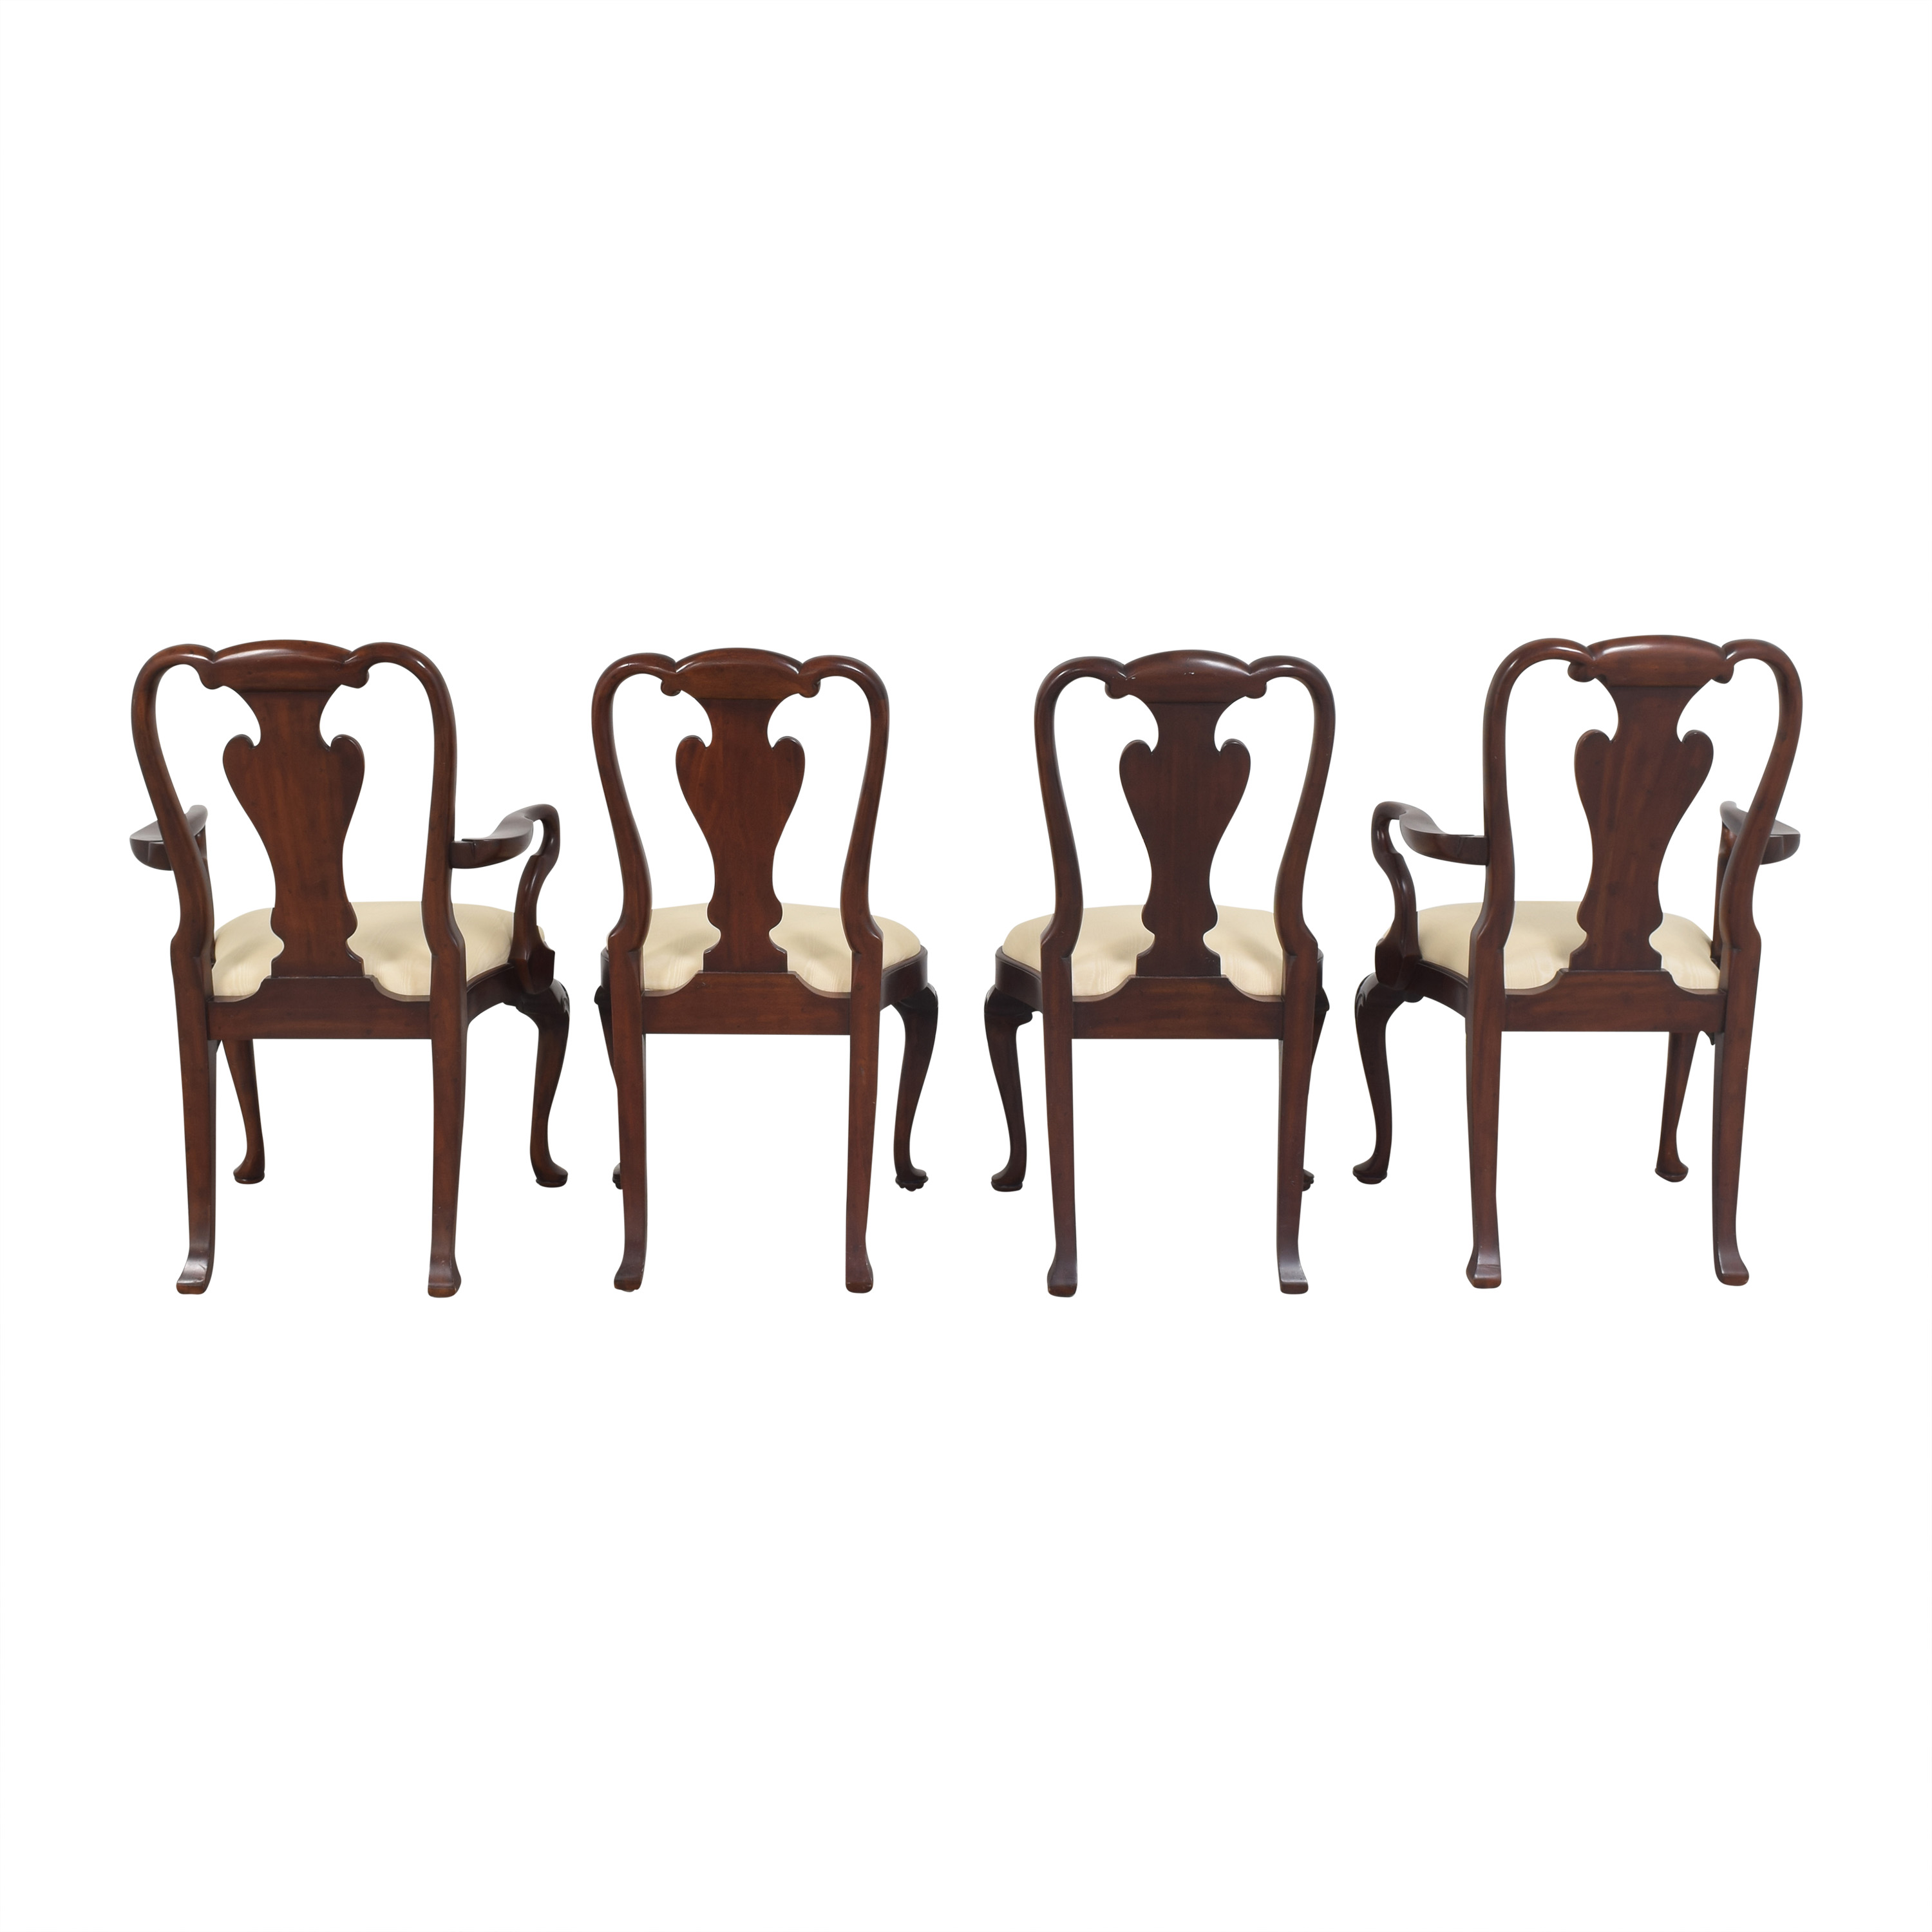 buy Maitland-Smith Regency Dining Chairs Maitland-Smith Chairs